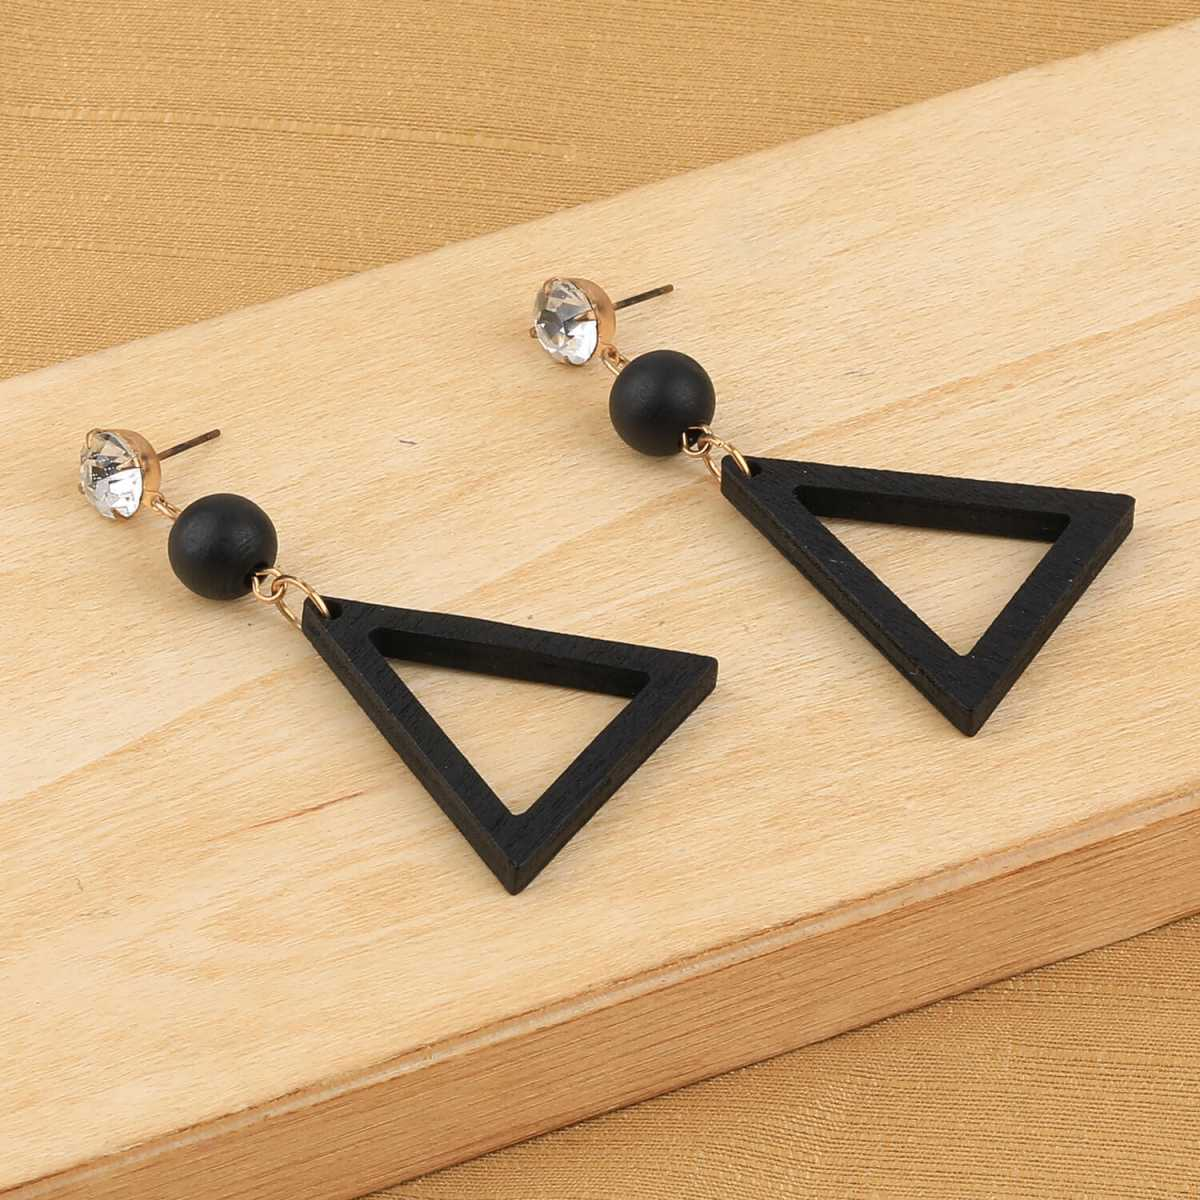 SILVER SHINE Elegant Dangler Black Wooden Fashion Earrings For Girls and Women